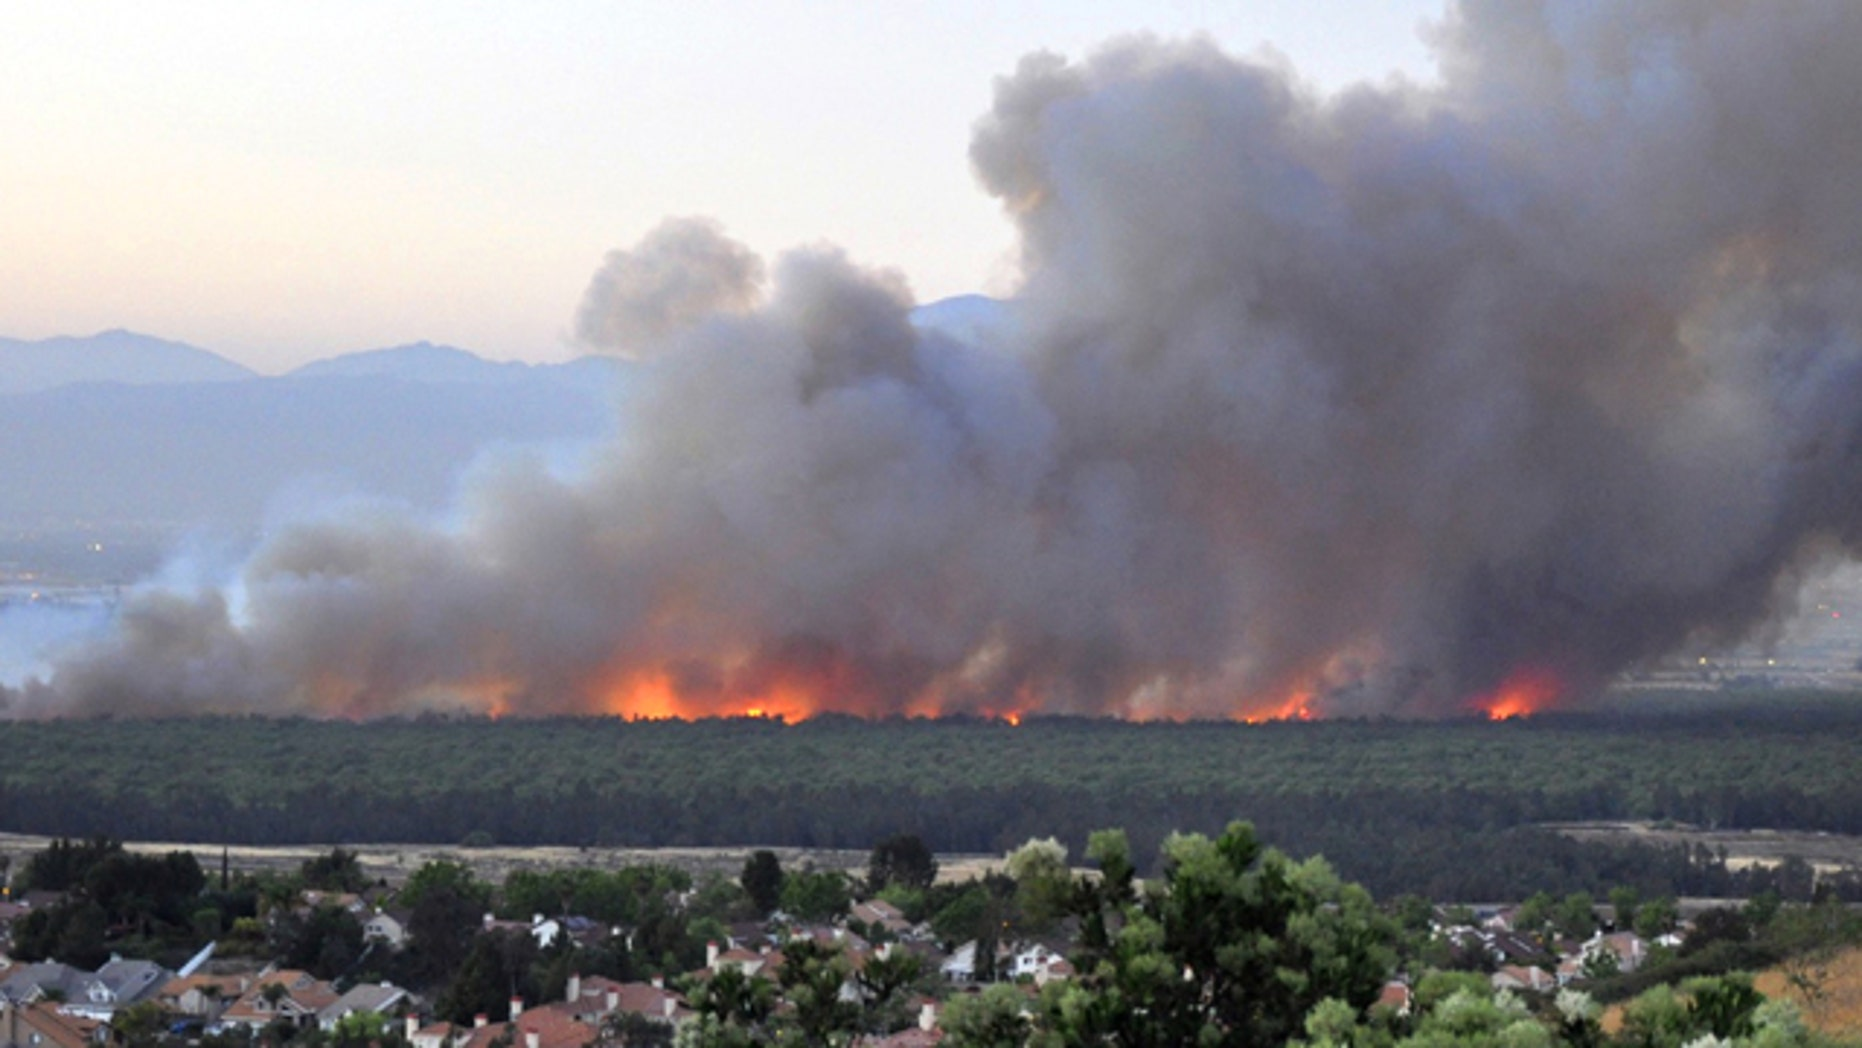 April 18, 2015: In this photo provided by Daniel Cole, flames burn in the Prado Dam Flood Control Basin adjacent to homes, foreground, as seen from Corona, Calif. (Daniel Cole via AP)